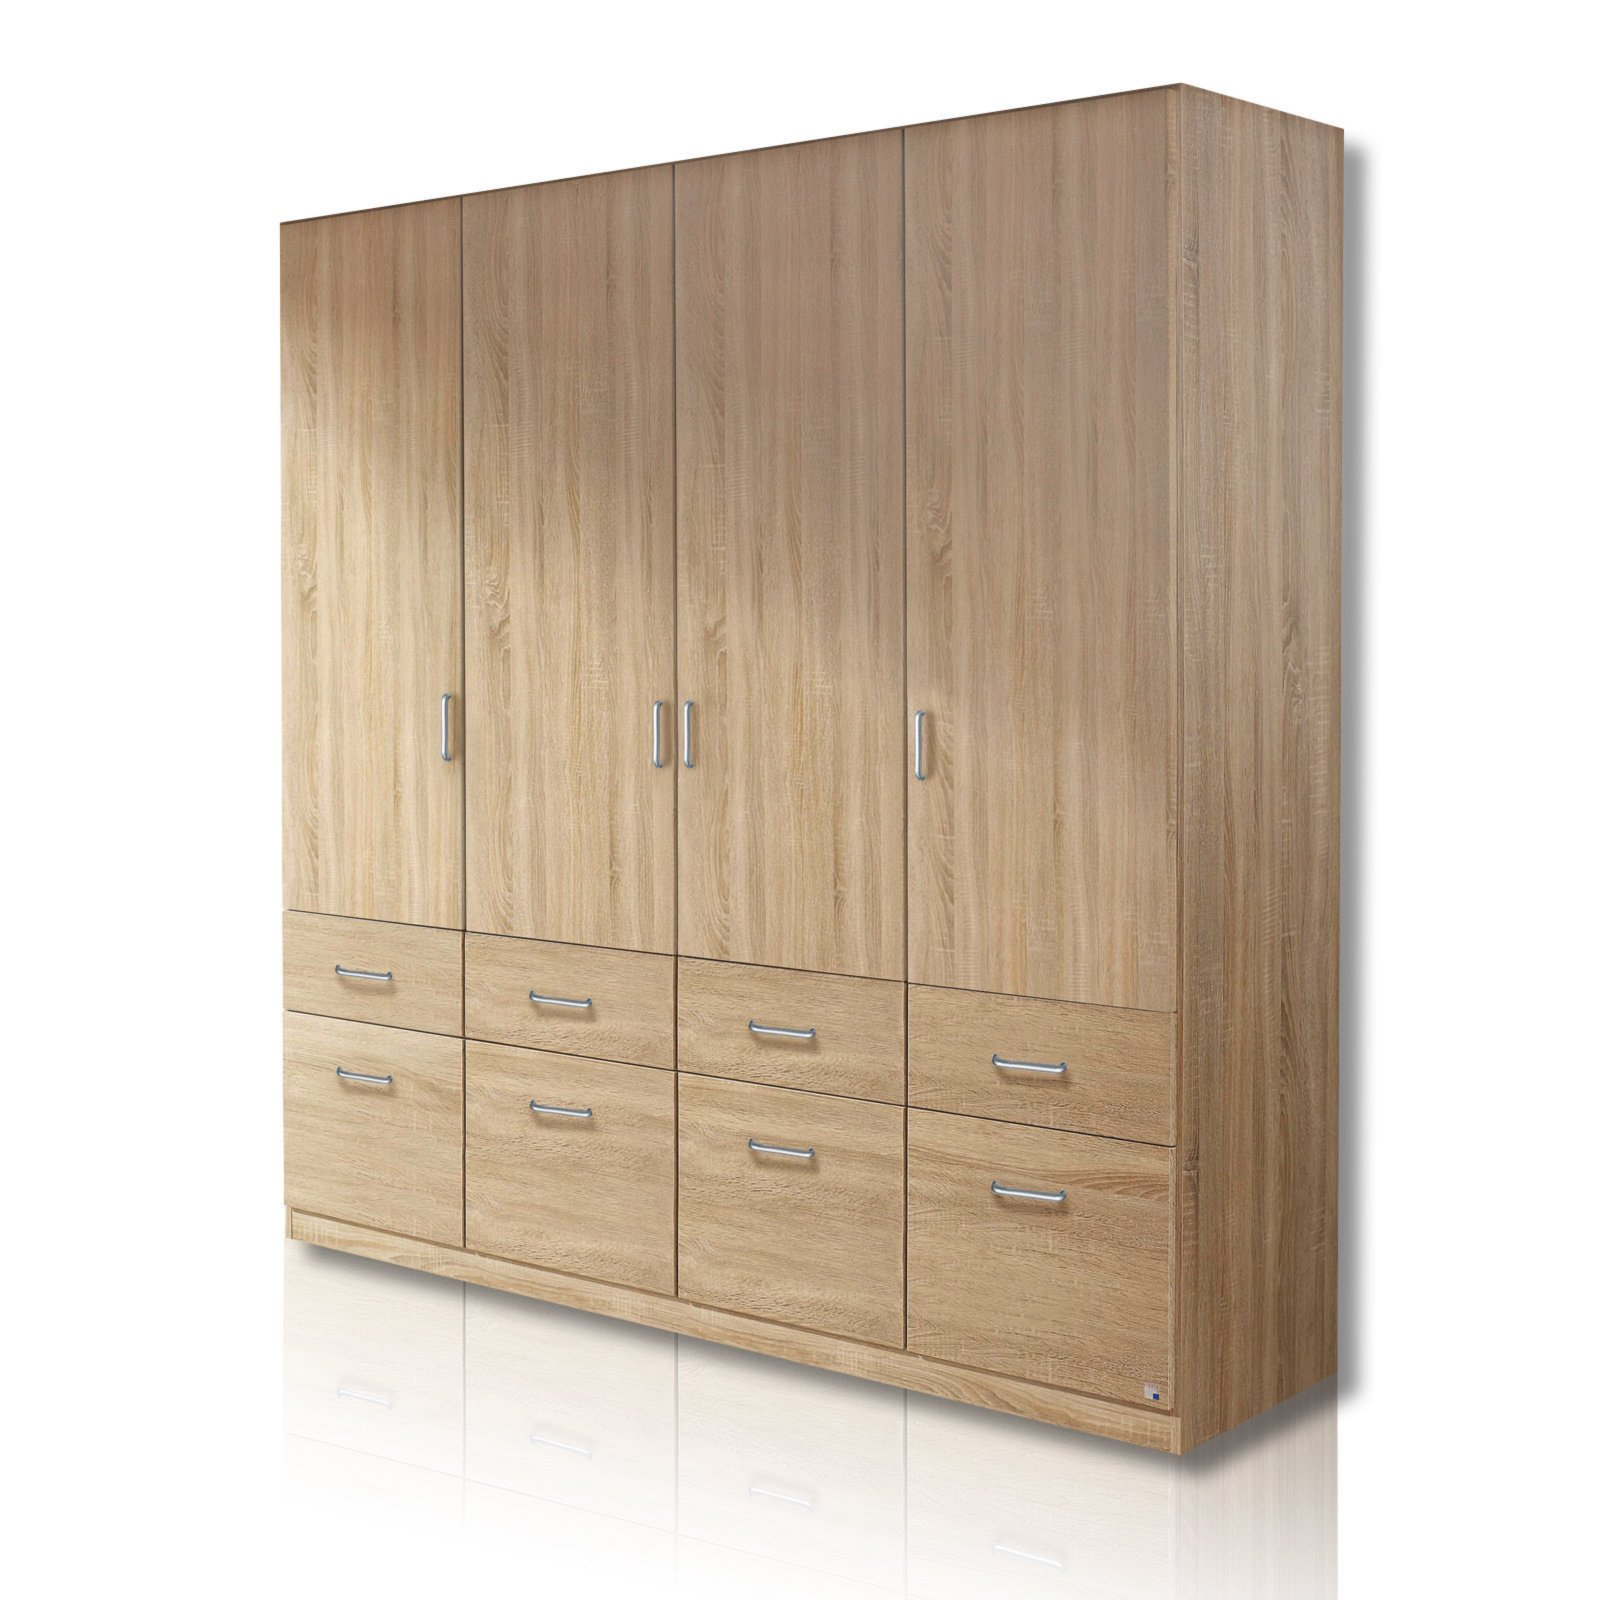 kleiderschrank aalen sonoma eiche 181 cm breit. Black Bedroom Furniture Sets. Home Design Ideas